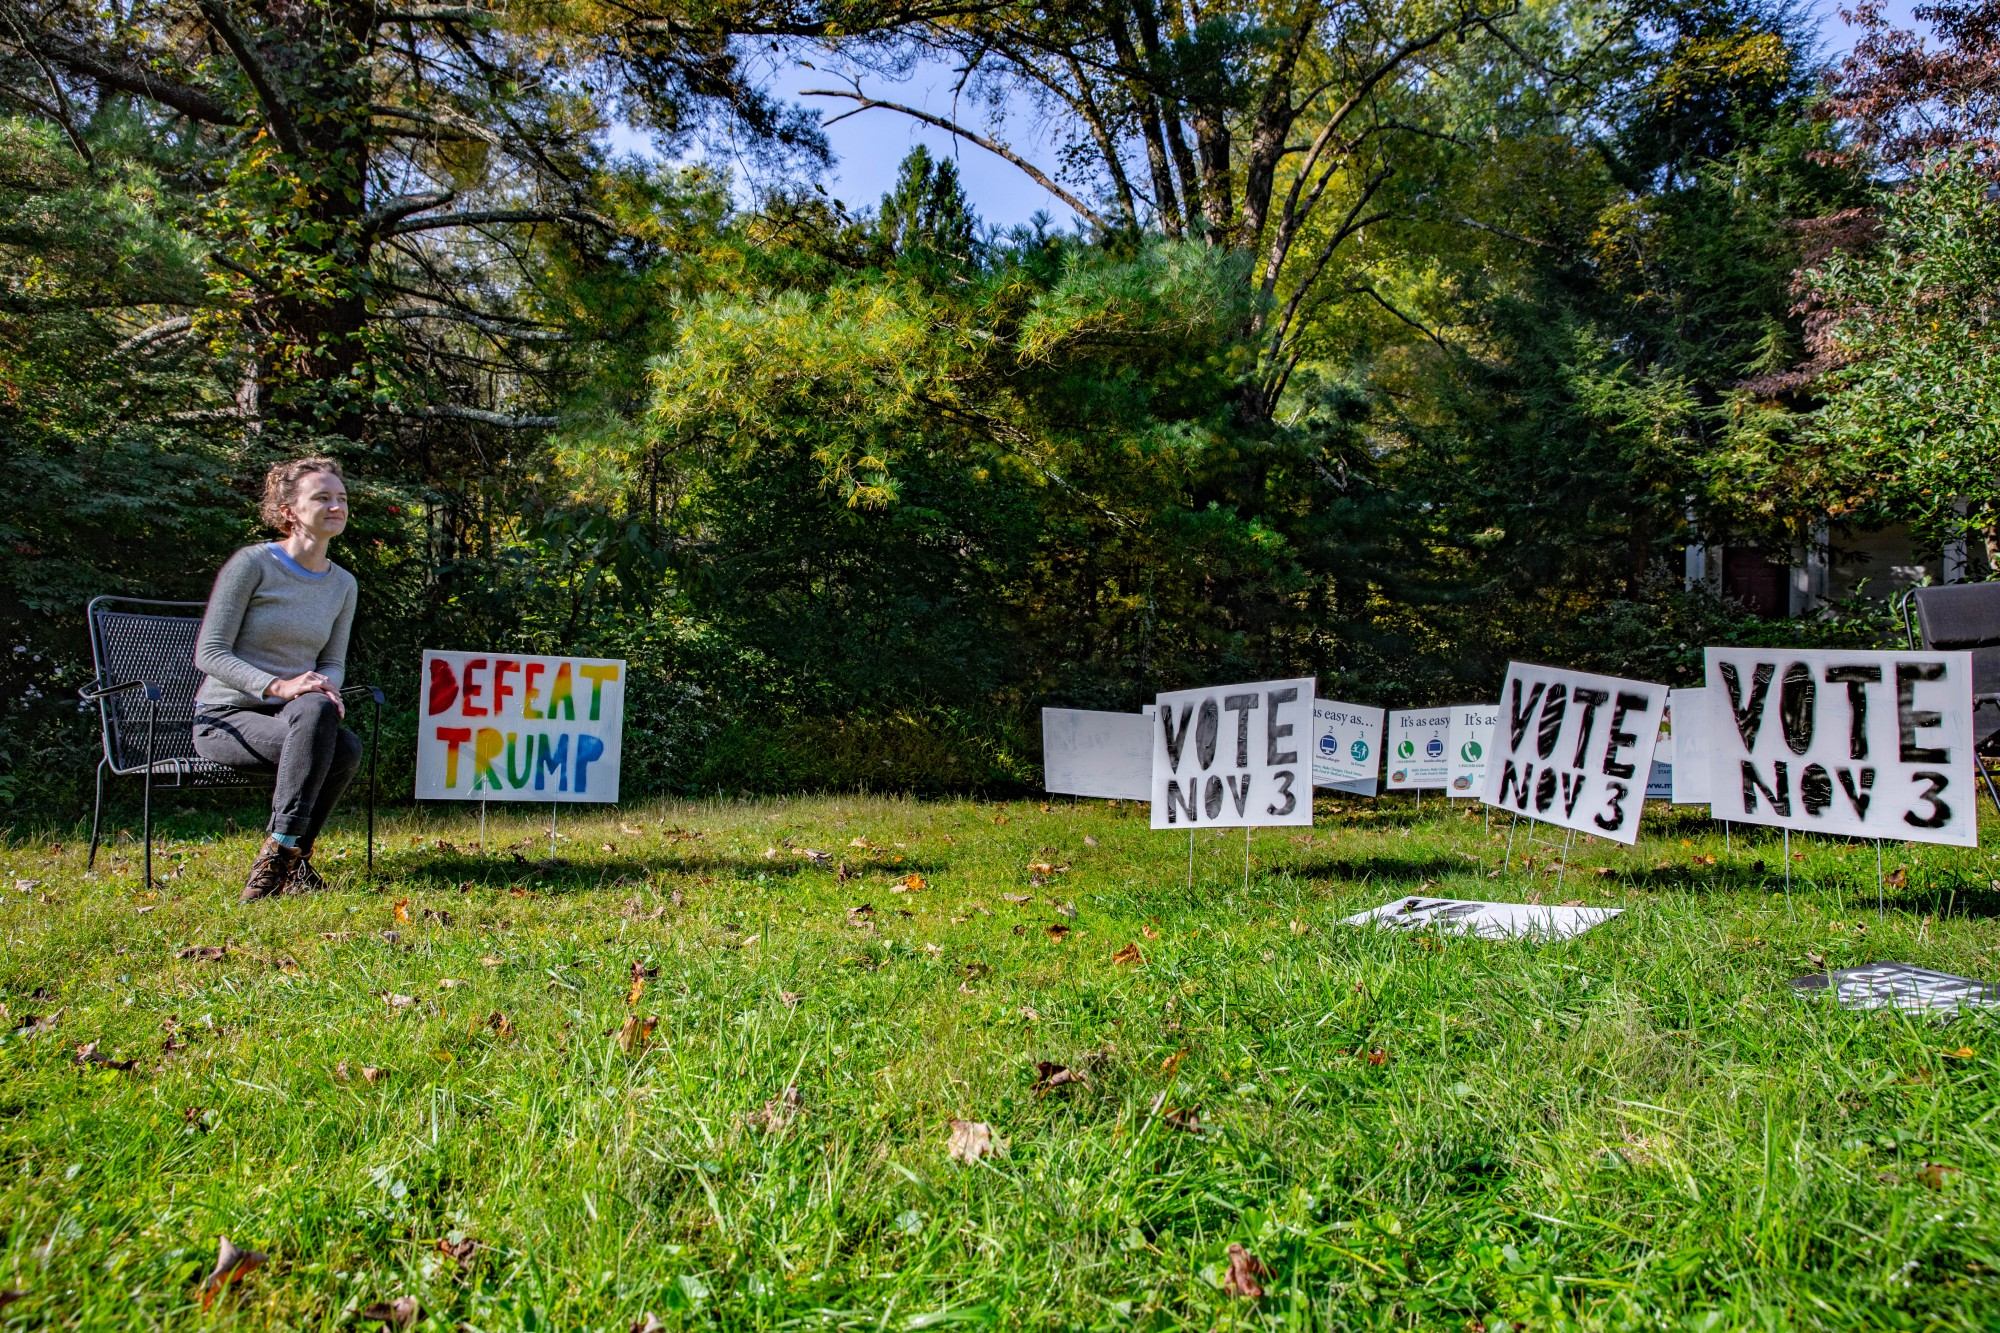 Activist Andrea Reany admires her sign-filled front yard at her home in Millfield, Ohio, on the morning of Wednesday, Oct. 7, 2020. Reany intends to be known as an organizer showing up for racial justice in southeastern Ohio while encouraging people to vote in the election next month.